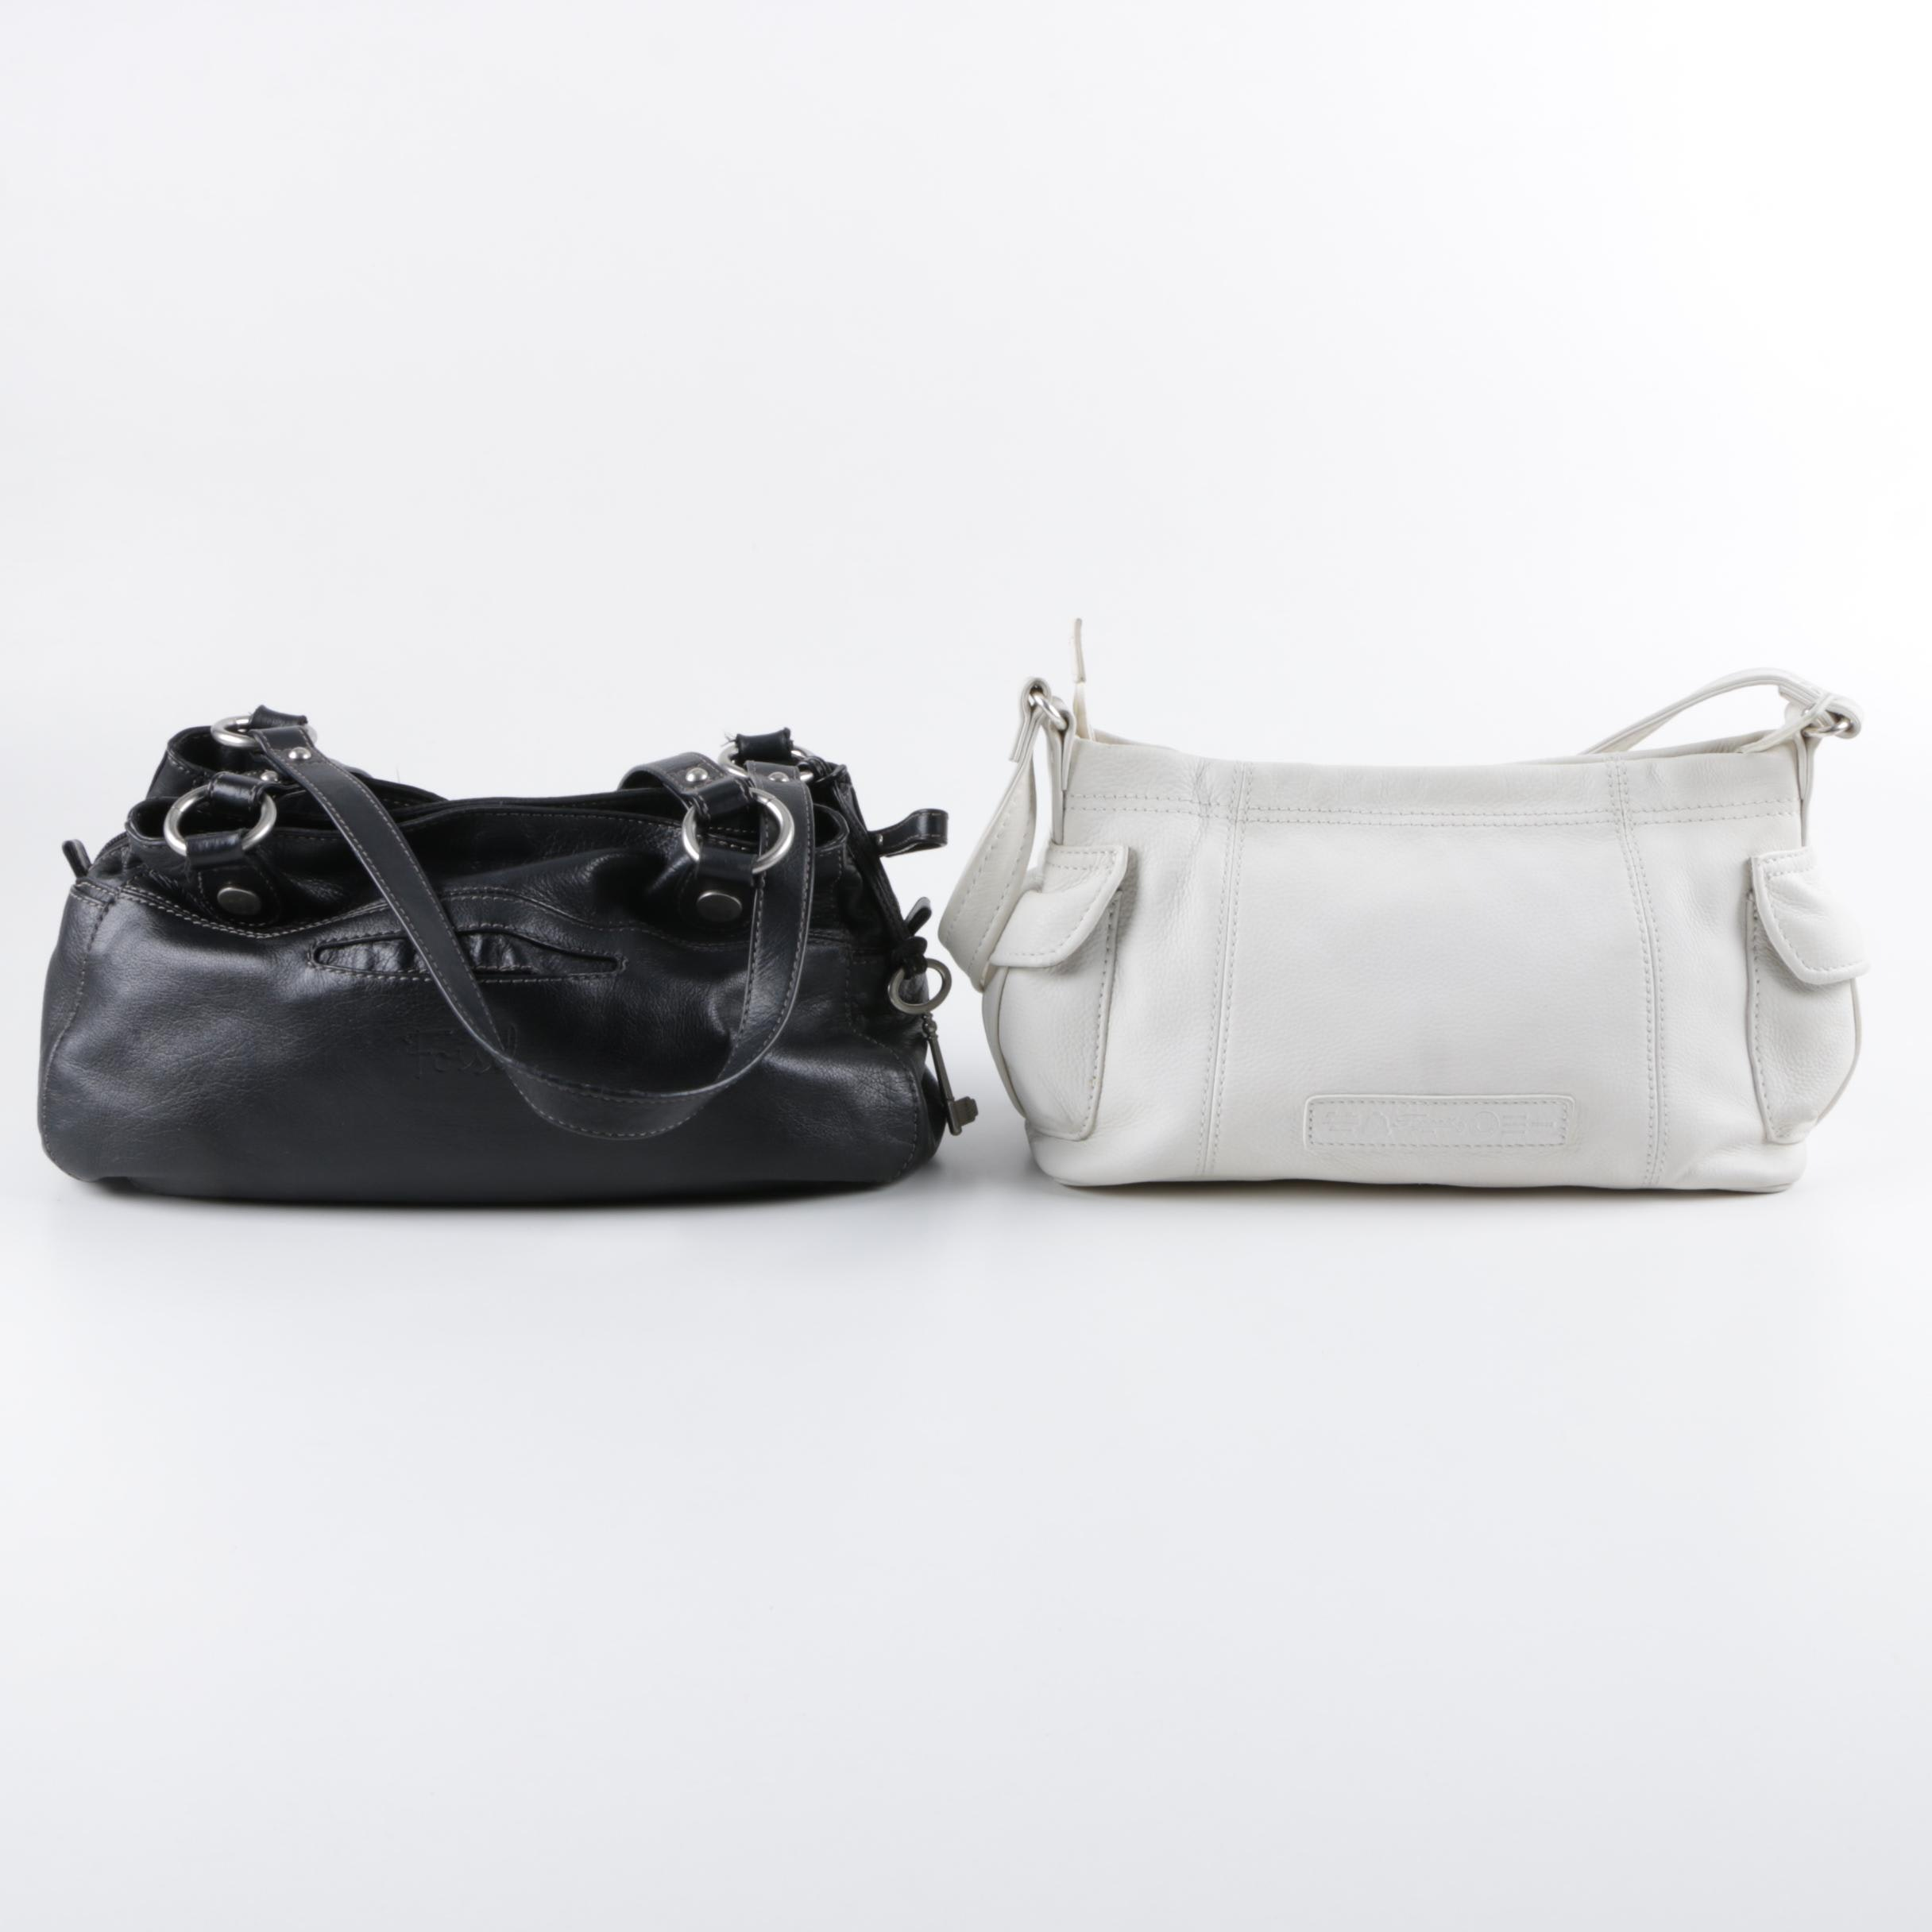 Fossil Black and White Pebbled Leather Handbags